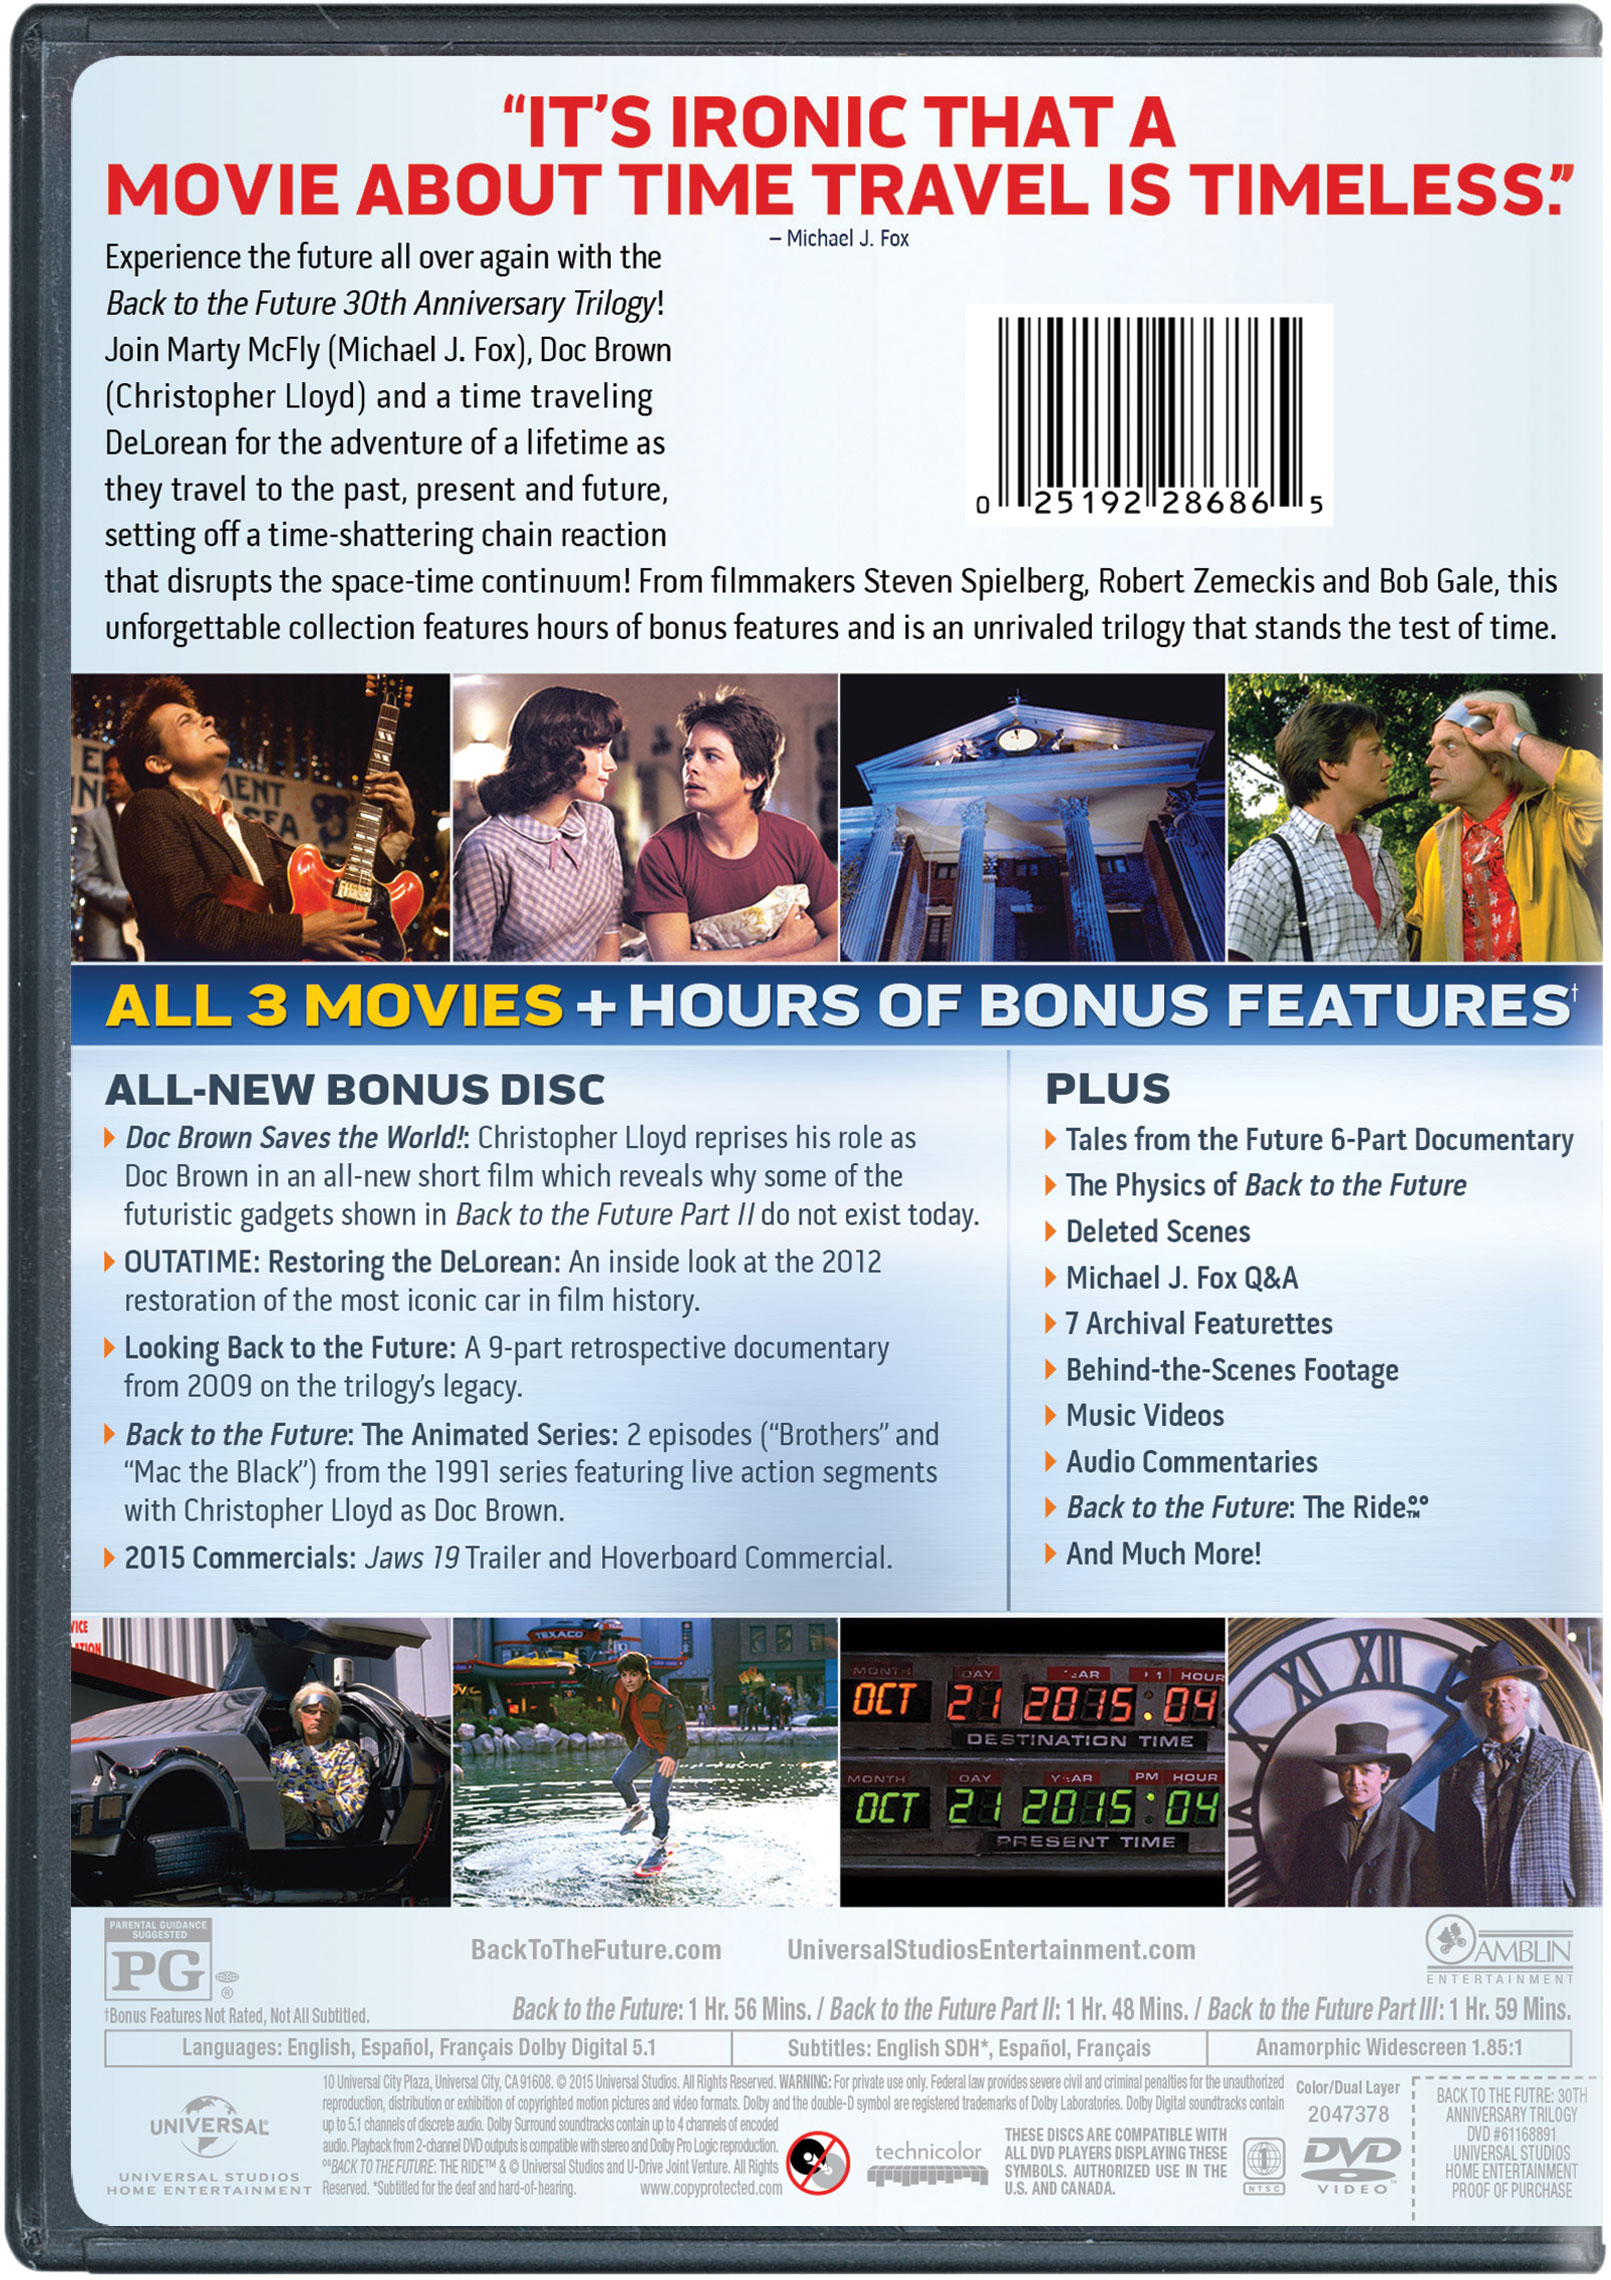 back to the future 25th anniversary trilogy 3